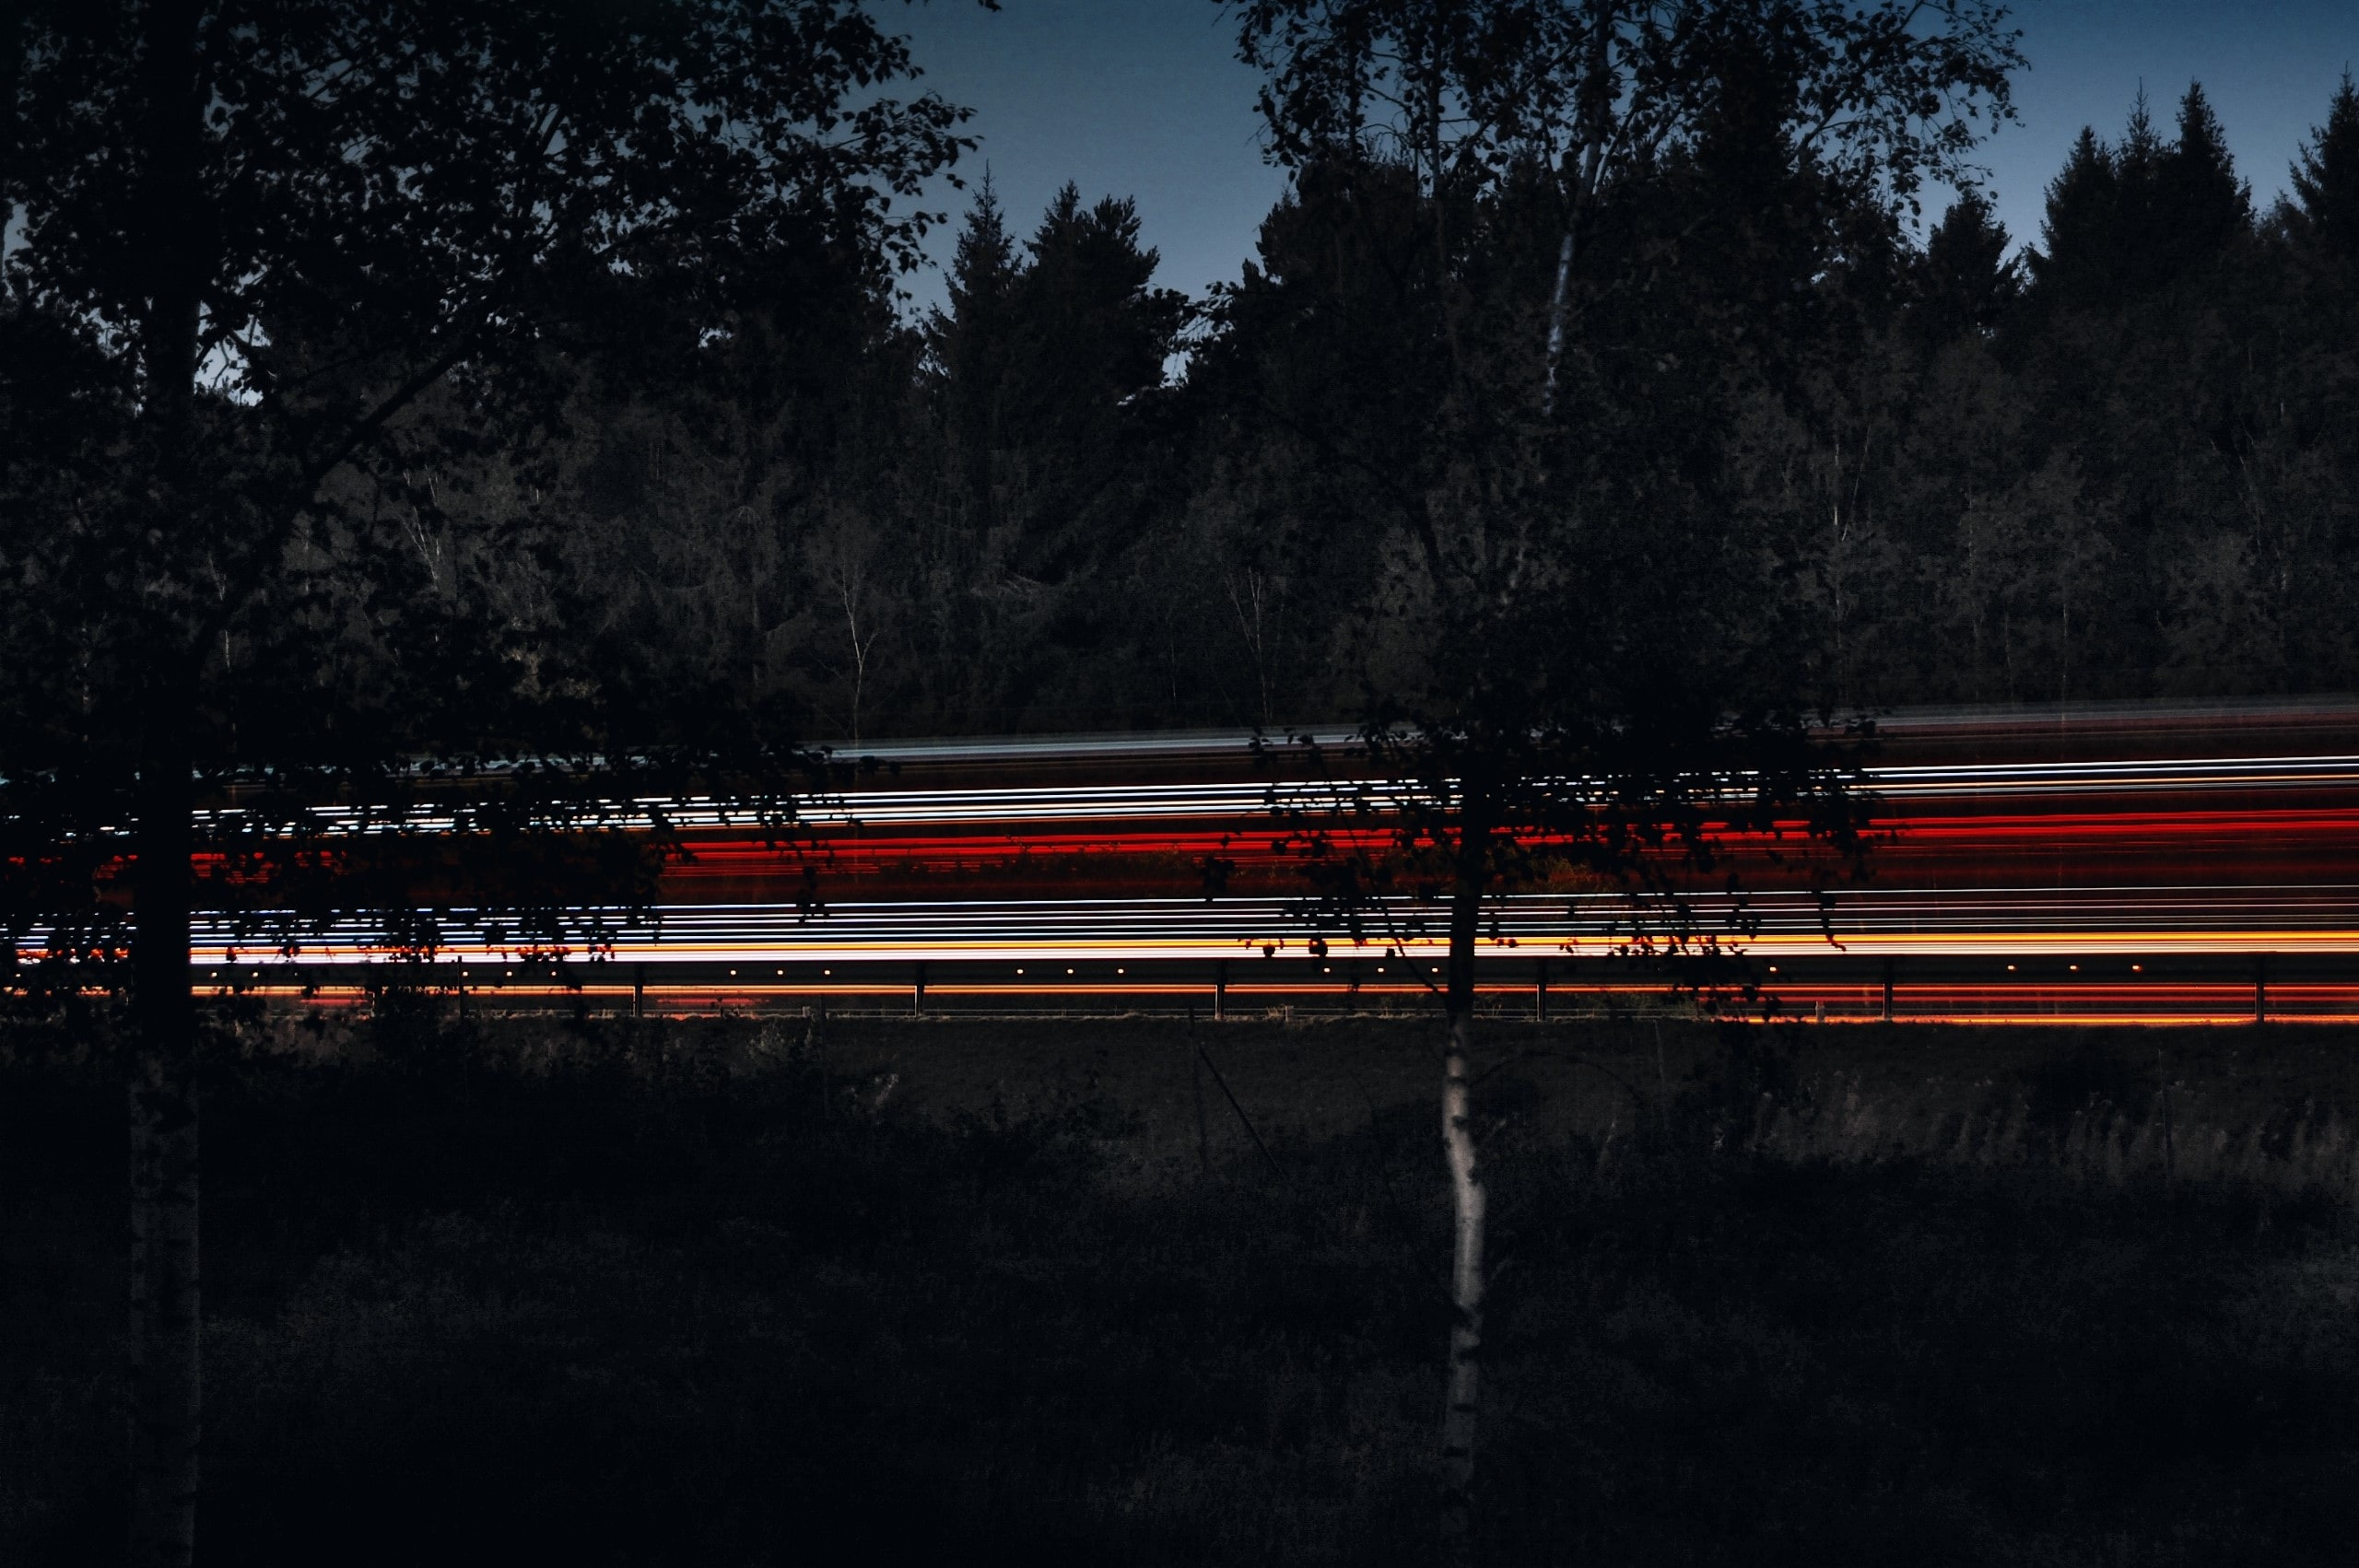 A night-time image showing vehicles in motion, taken from behind trees from the side of the road